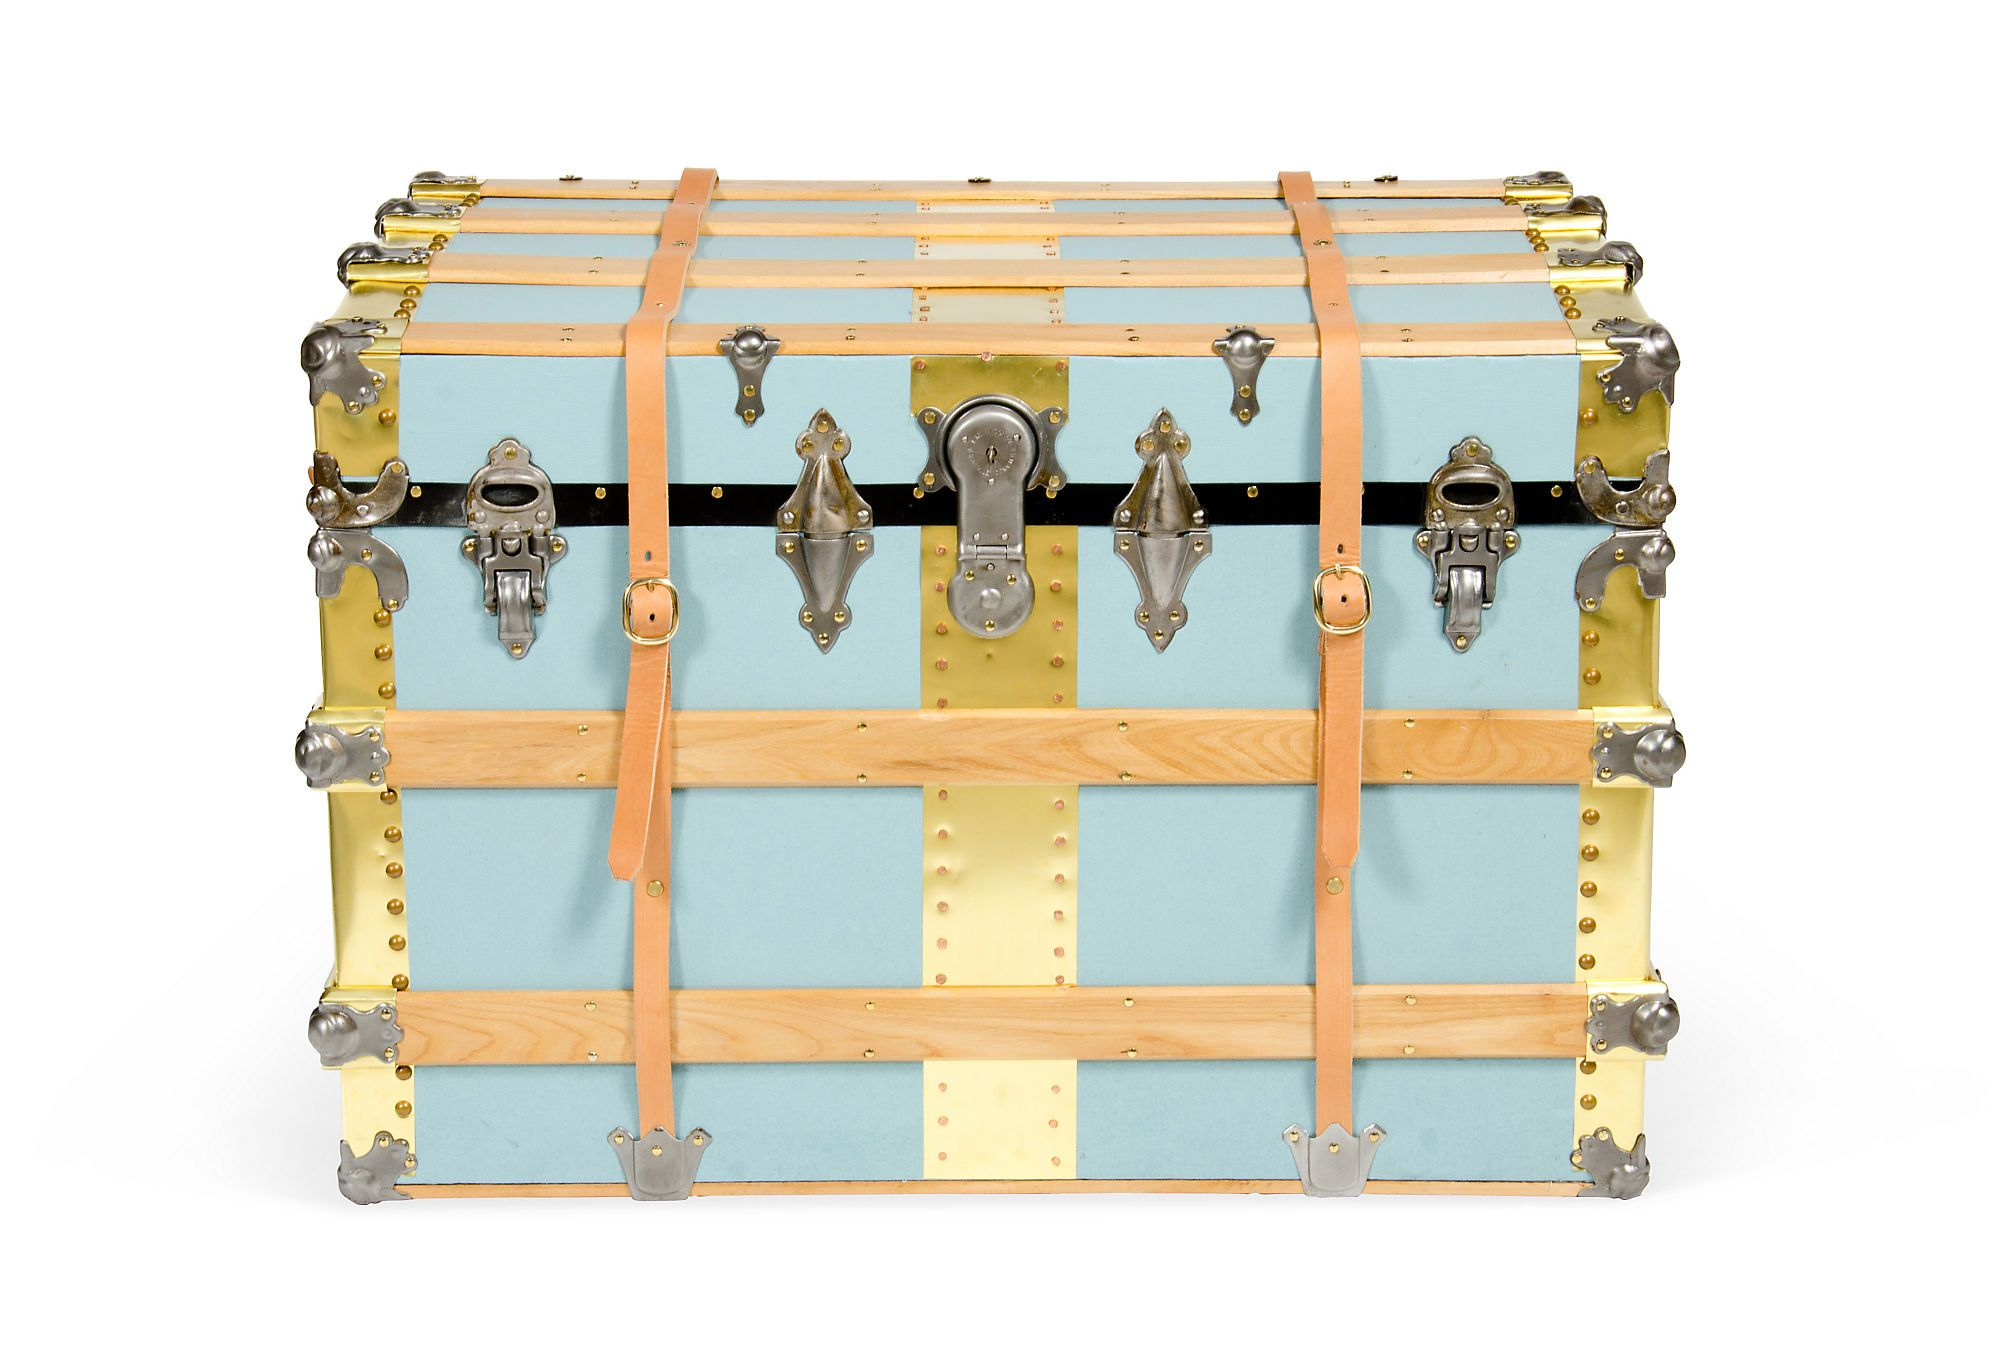 As many phases as I go through, my ultimate fave color combo will never change (Sarsaparilla Steamer Trunk, C. 1890)